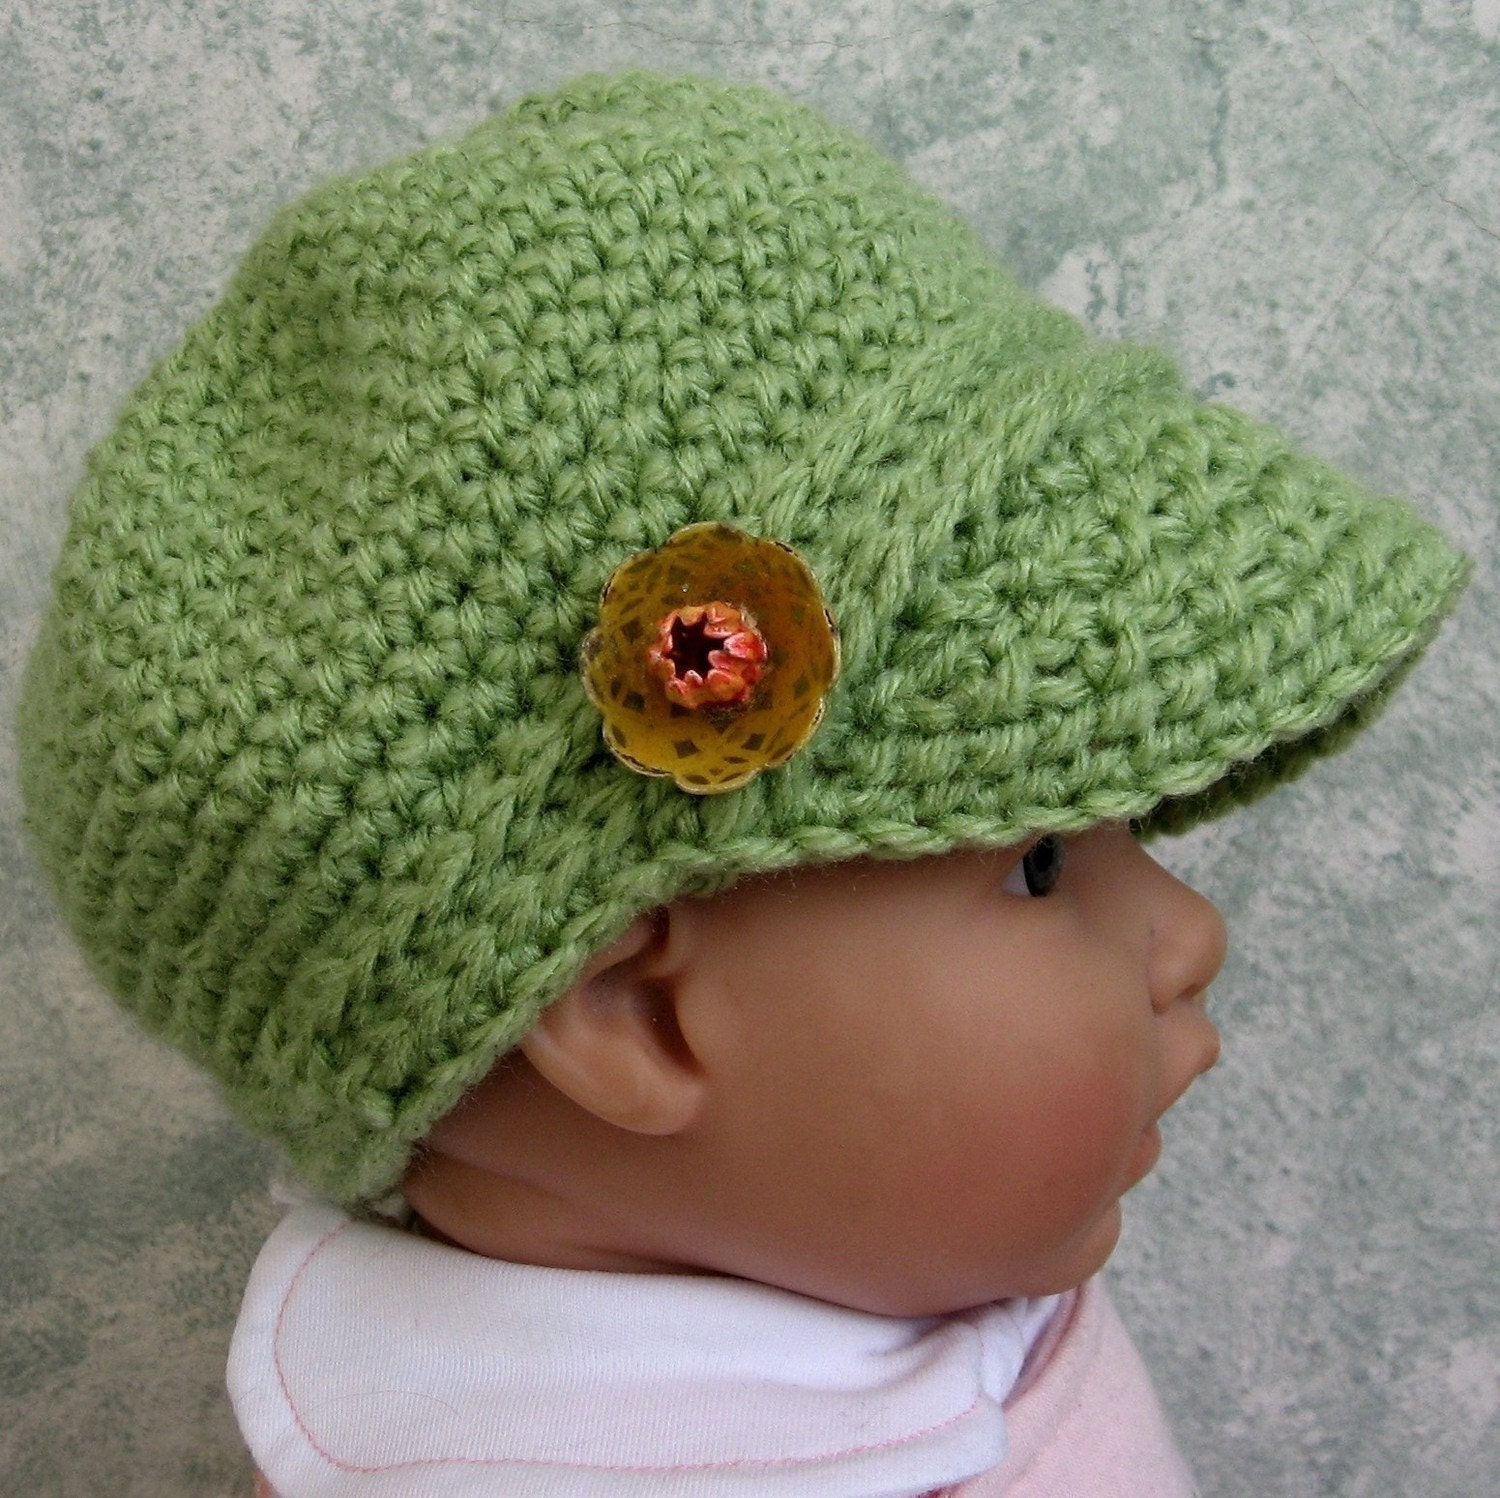 Crochet Patterns Infant Hats : Newsboy Hat Crochet Pattern Infant Toddler by kalliedesigns